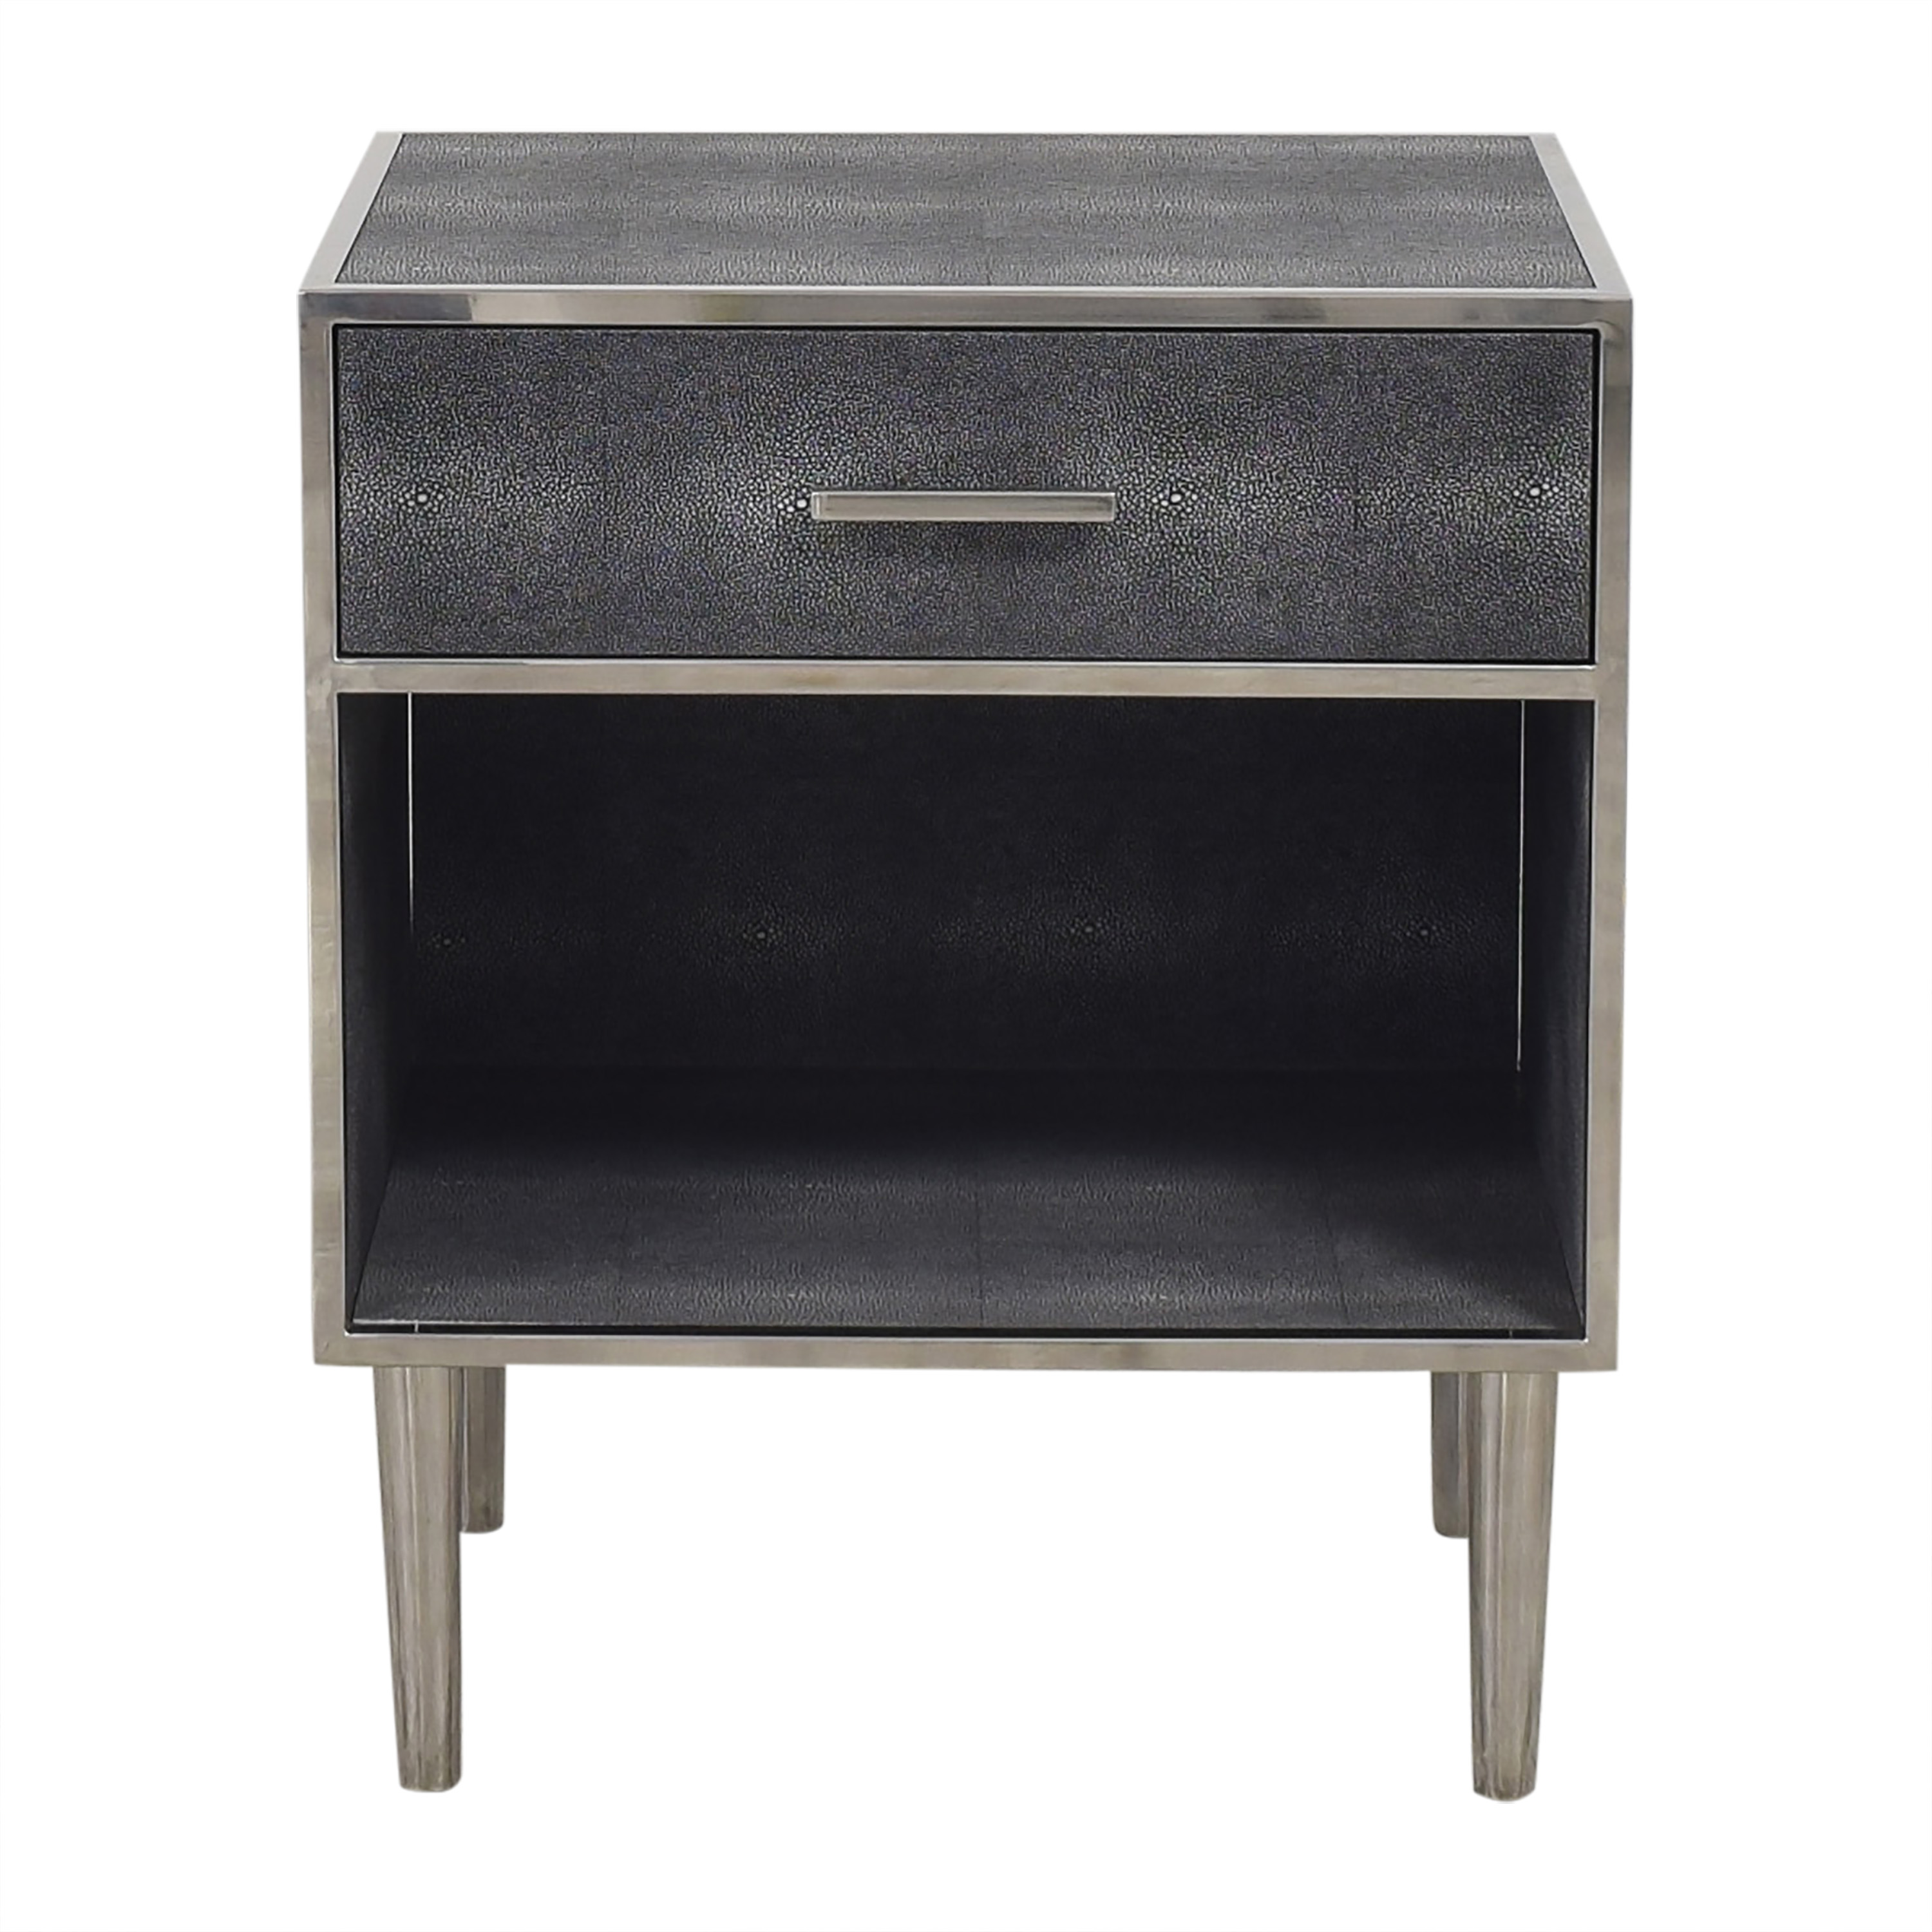 Safavieh Safavieh Couture Tammy Nightstand